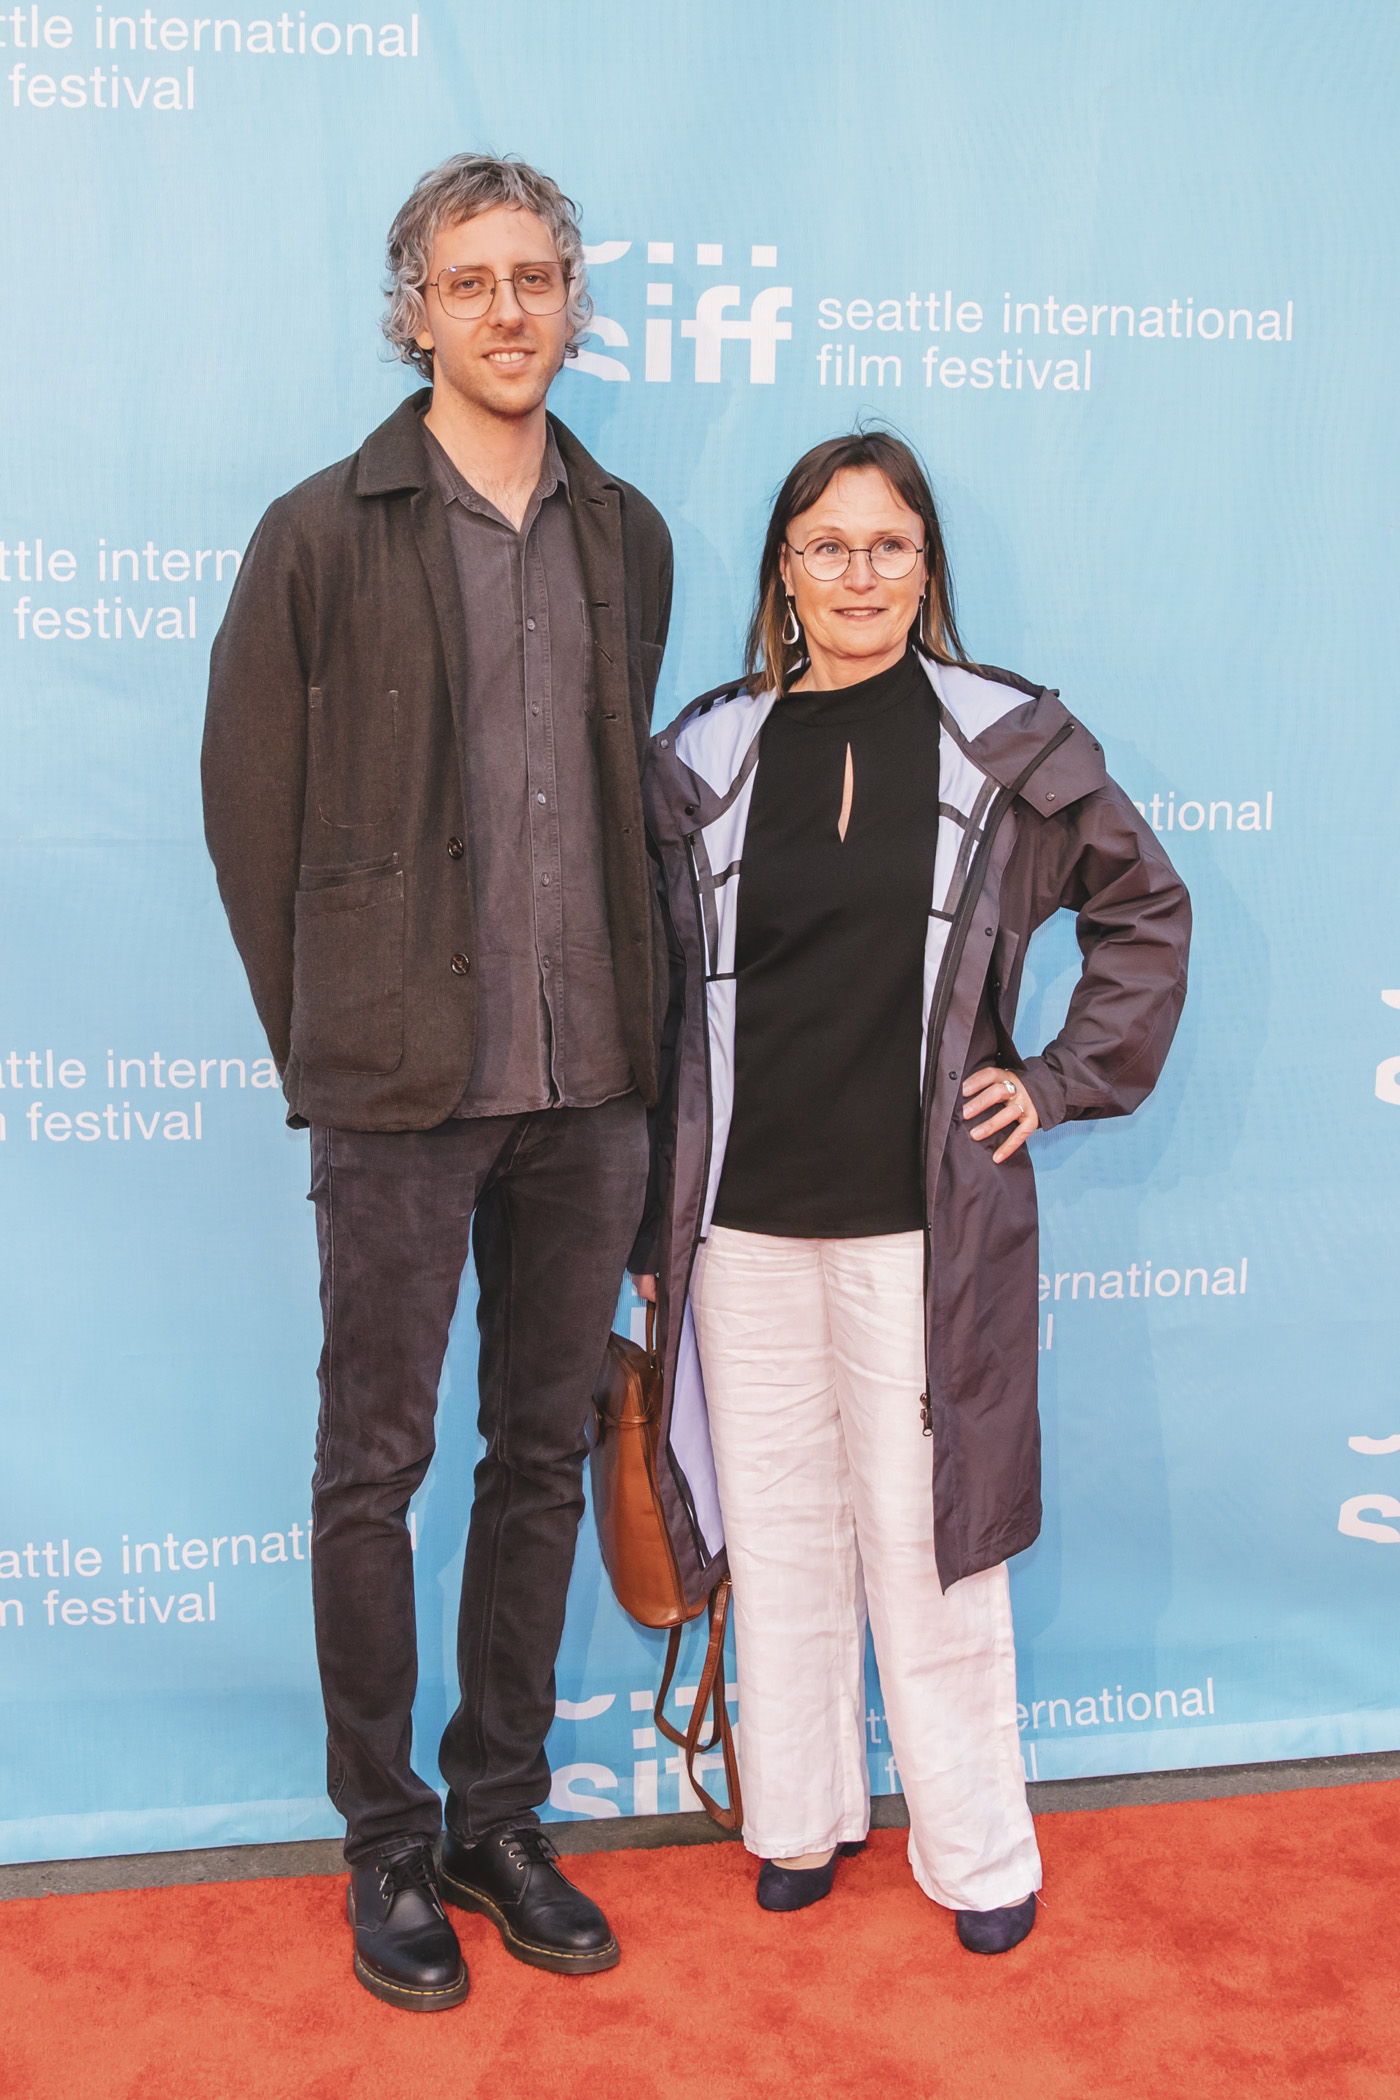 Filmmakers and guests walk the red carpet which marks the beginning of the 25-day Seattle International Film Festival at Seattle Center's McCaw Hall. (Sunita Martini / Seattle Refined)